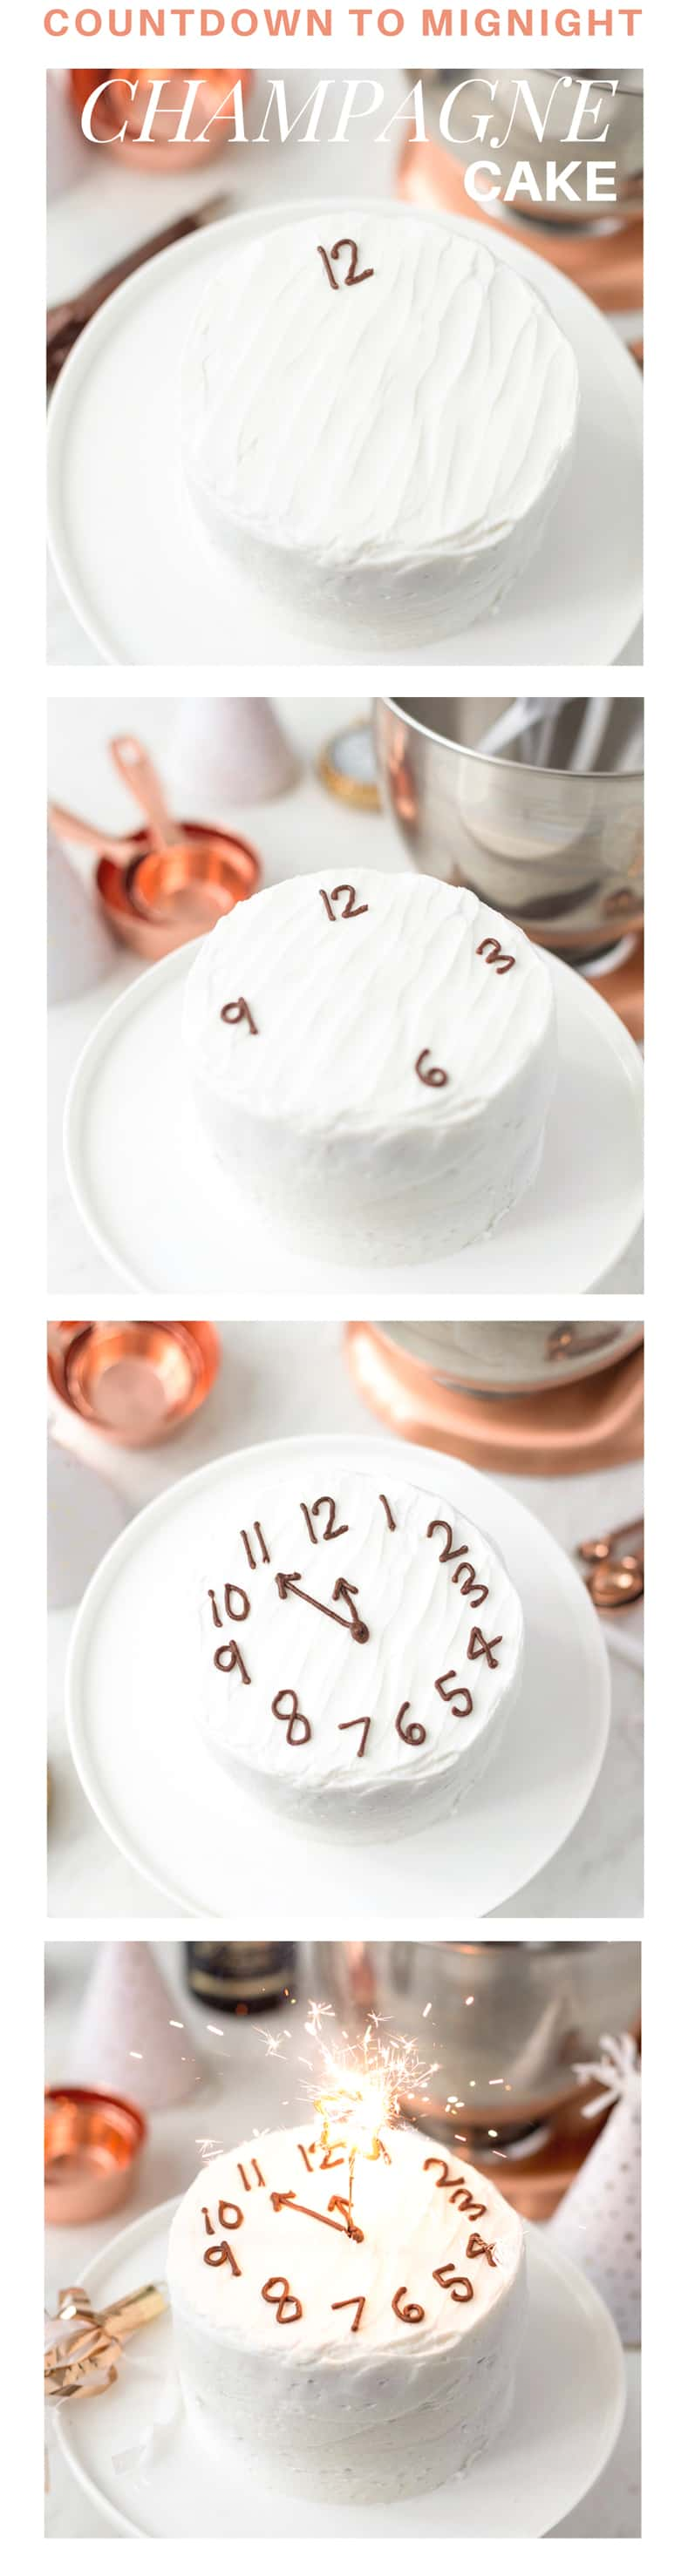 Countdown to Midnight cake from pizzazzerie.com | Easy Last Minute New Year's Eve Decorations